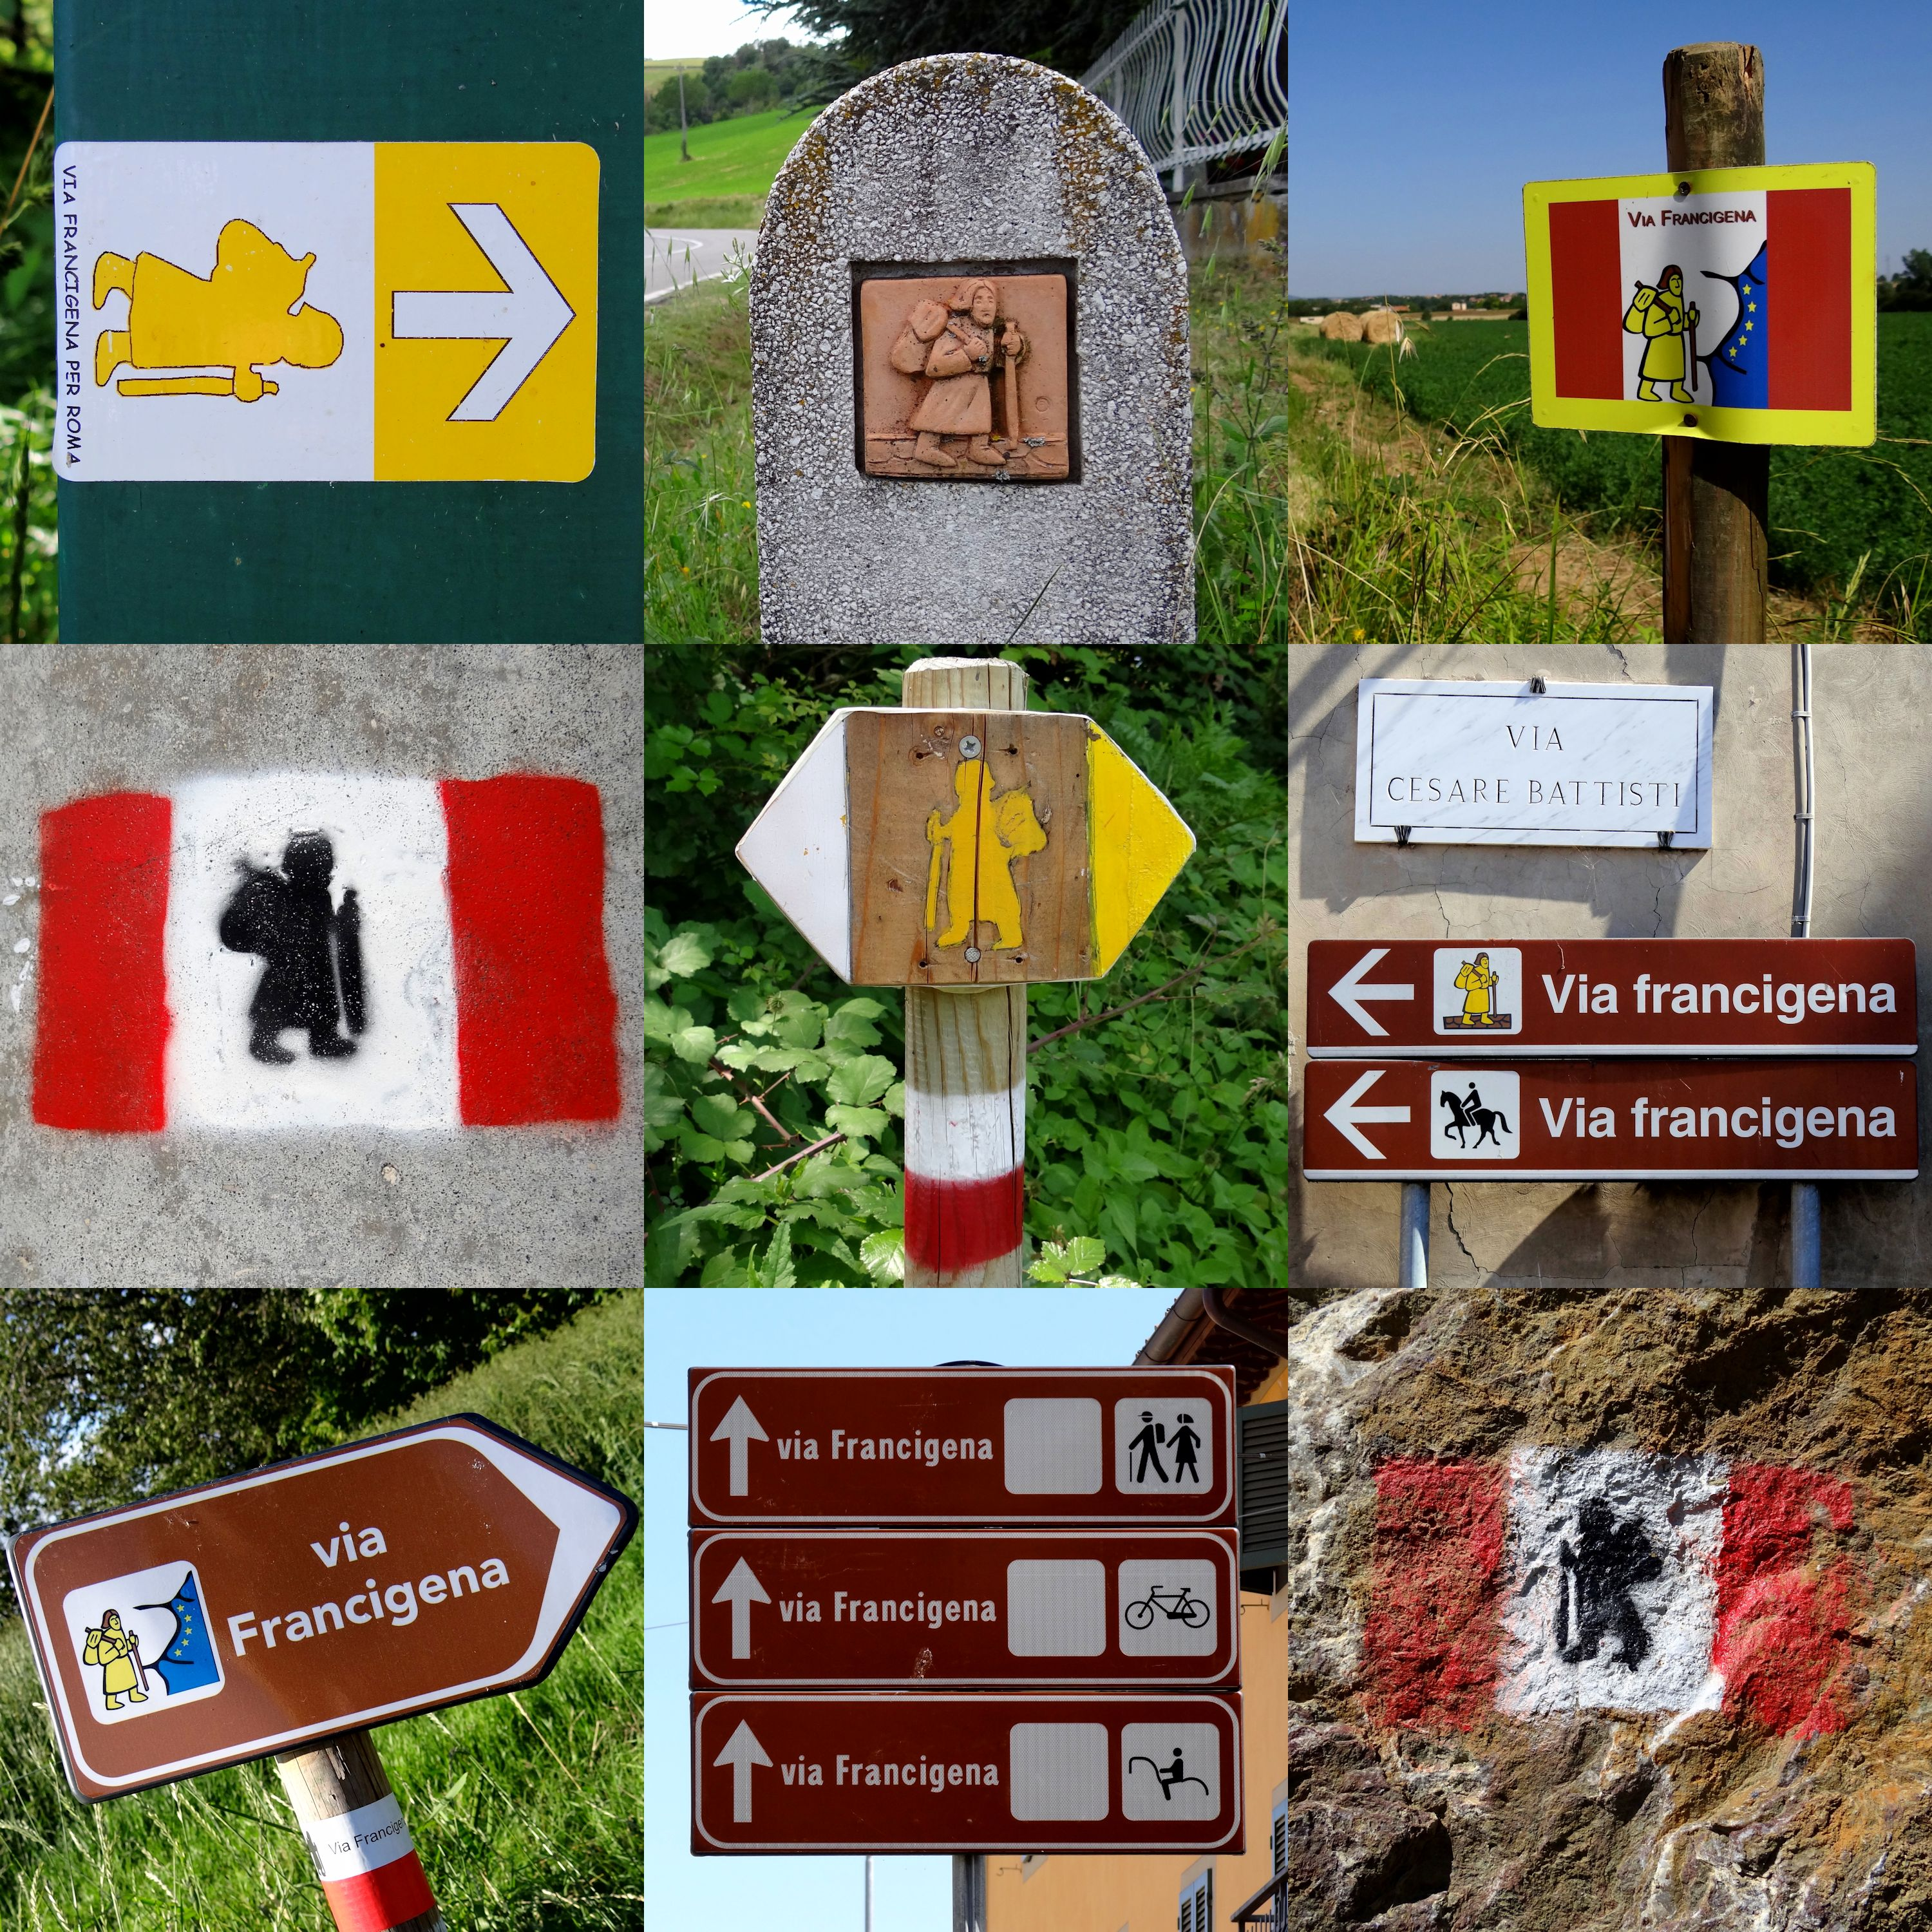 Via-Francigena-Signposts-In-Italy-2012